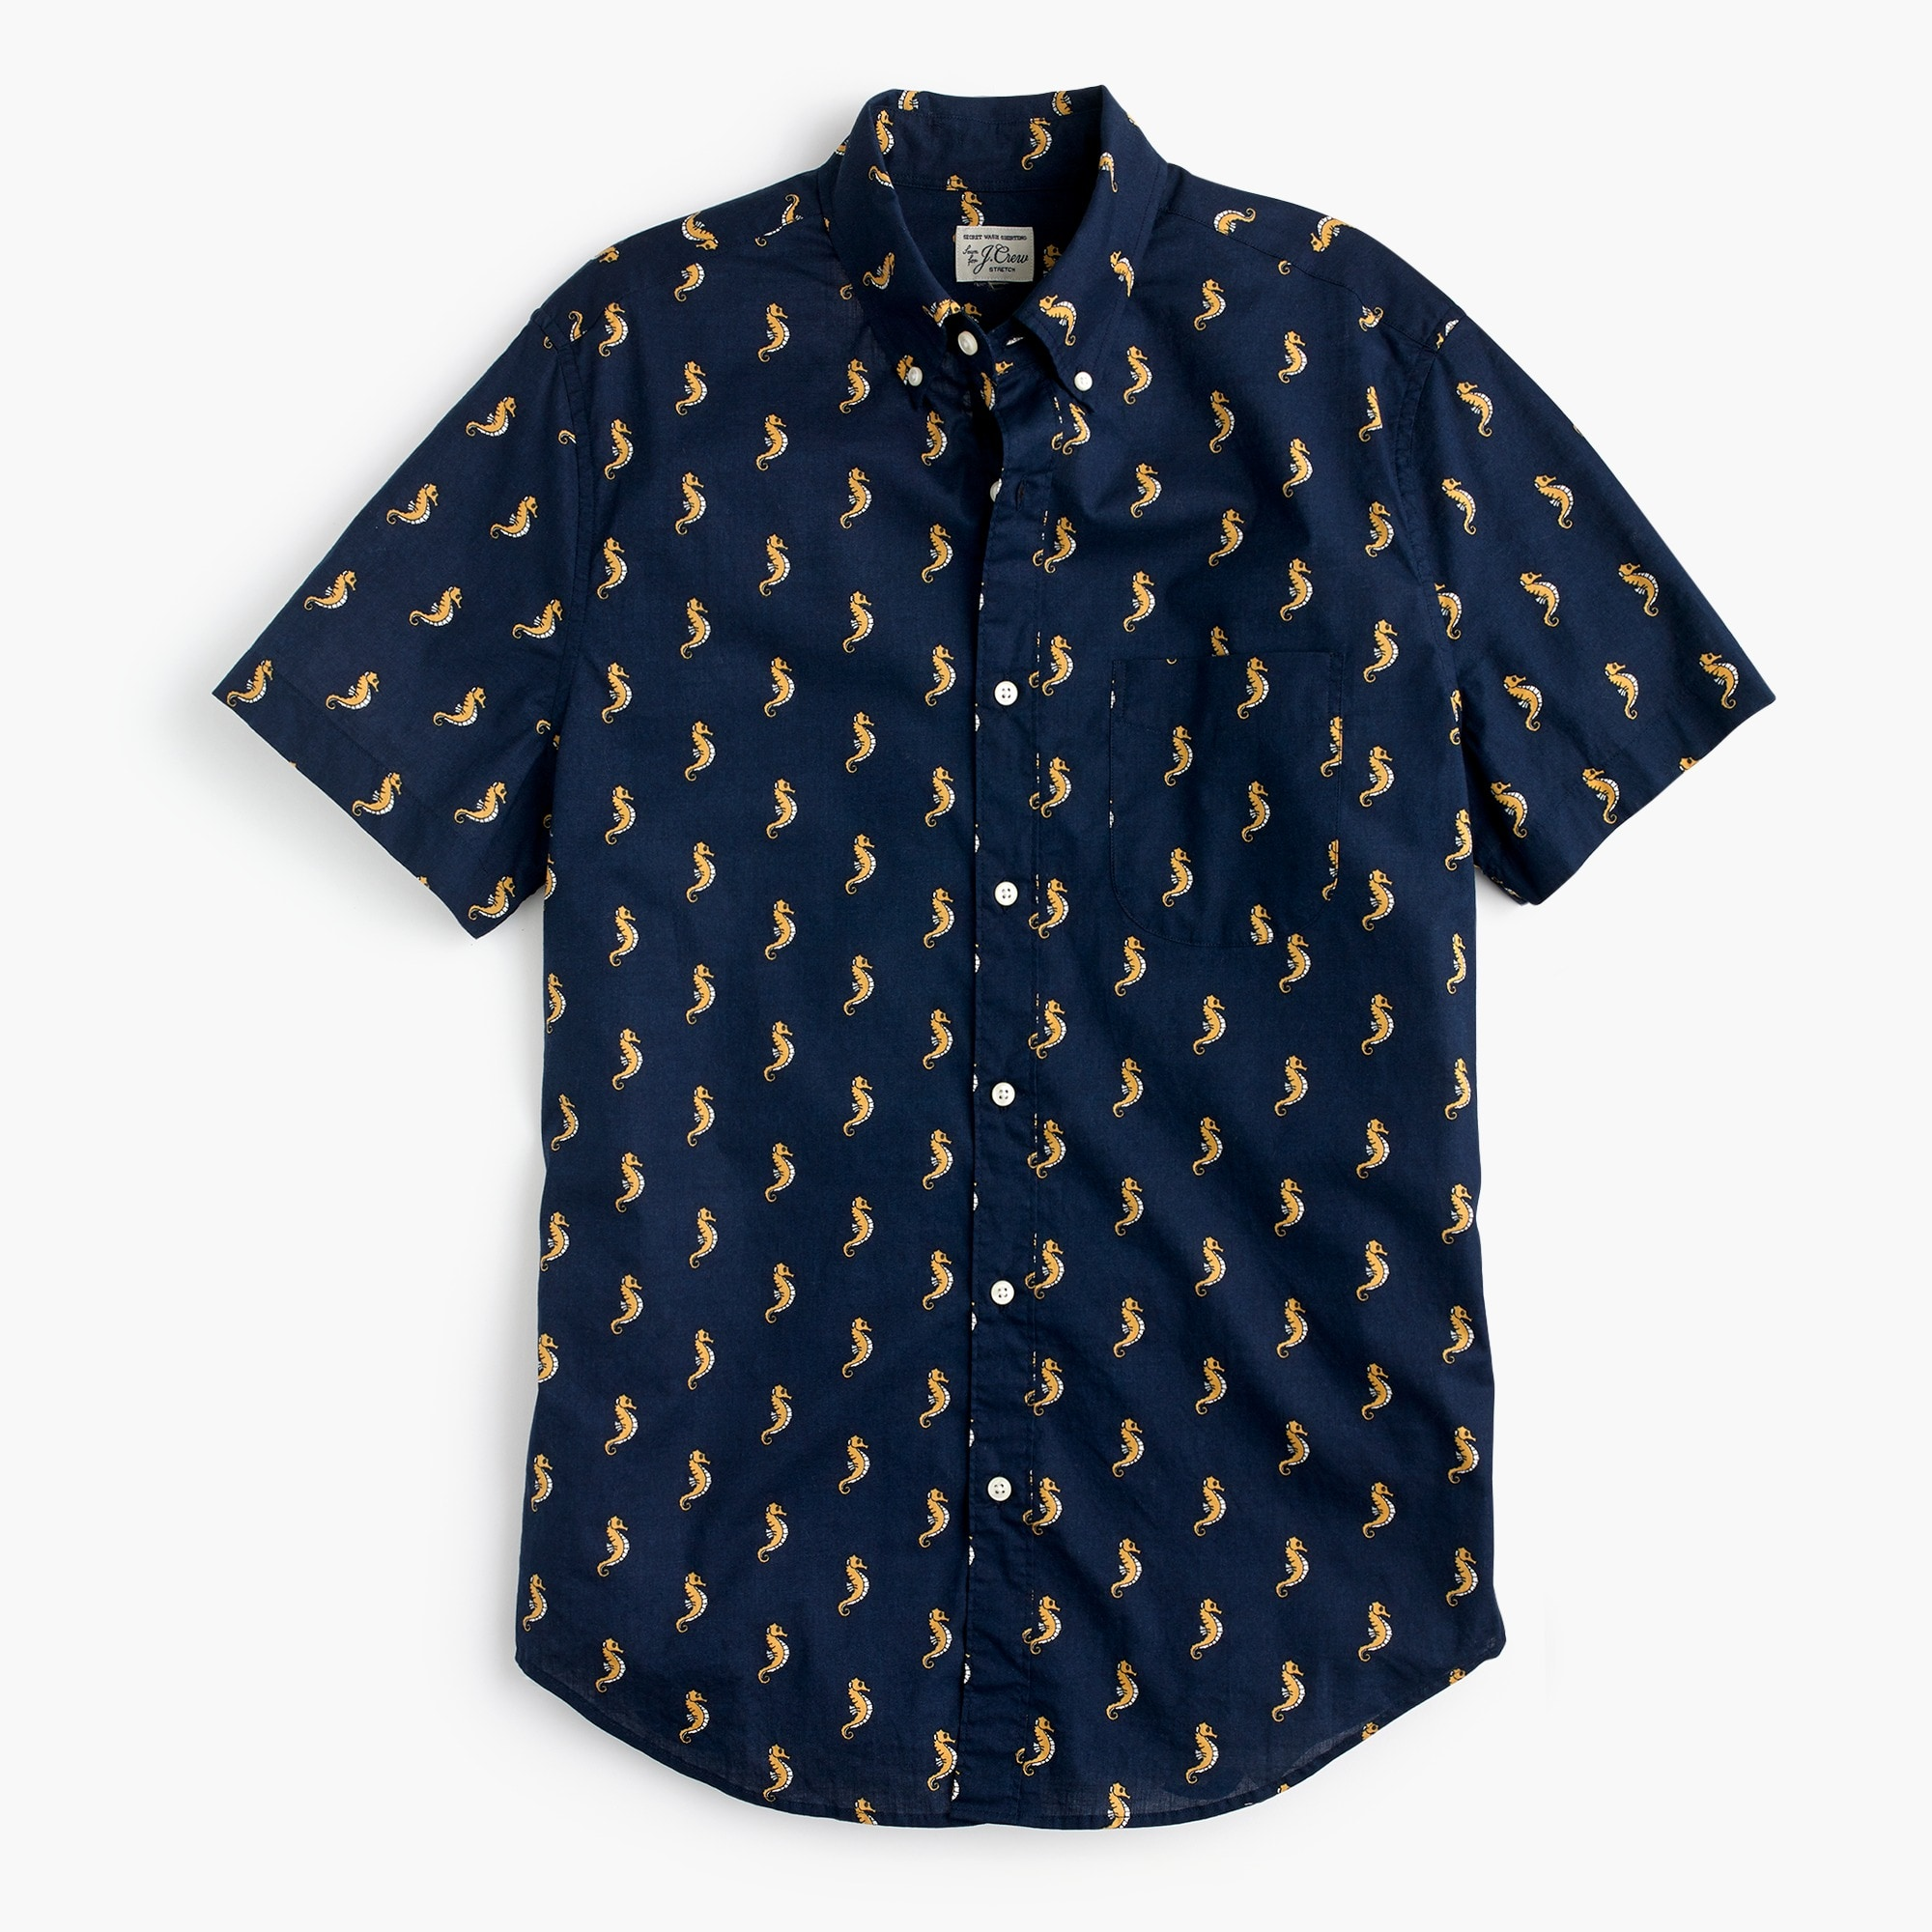 Image 3 for Slim stretch short-sleeve Secret Wash shirt in seahorse print